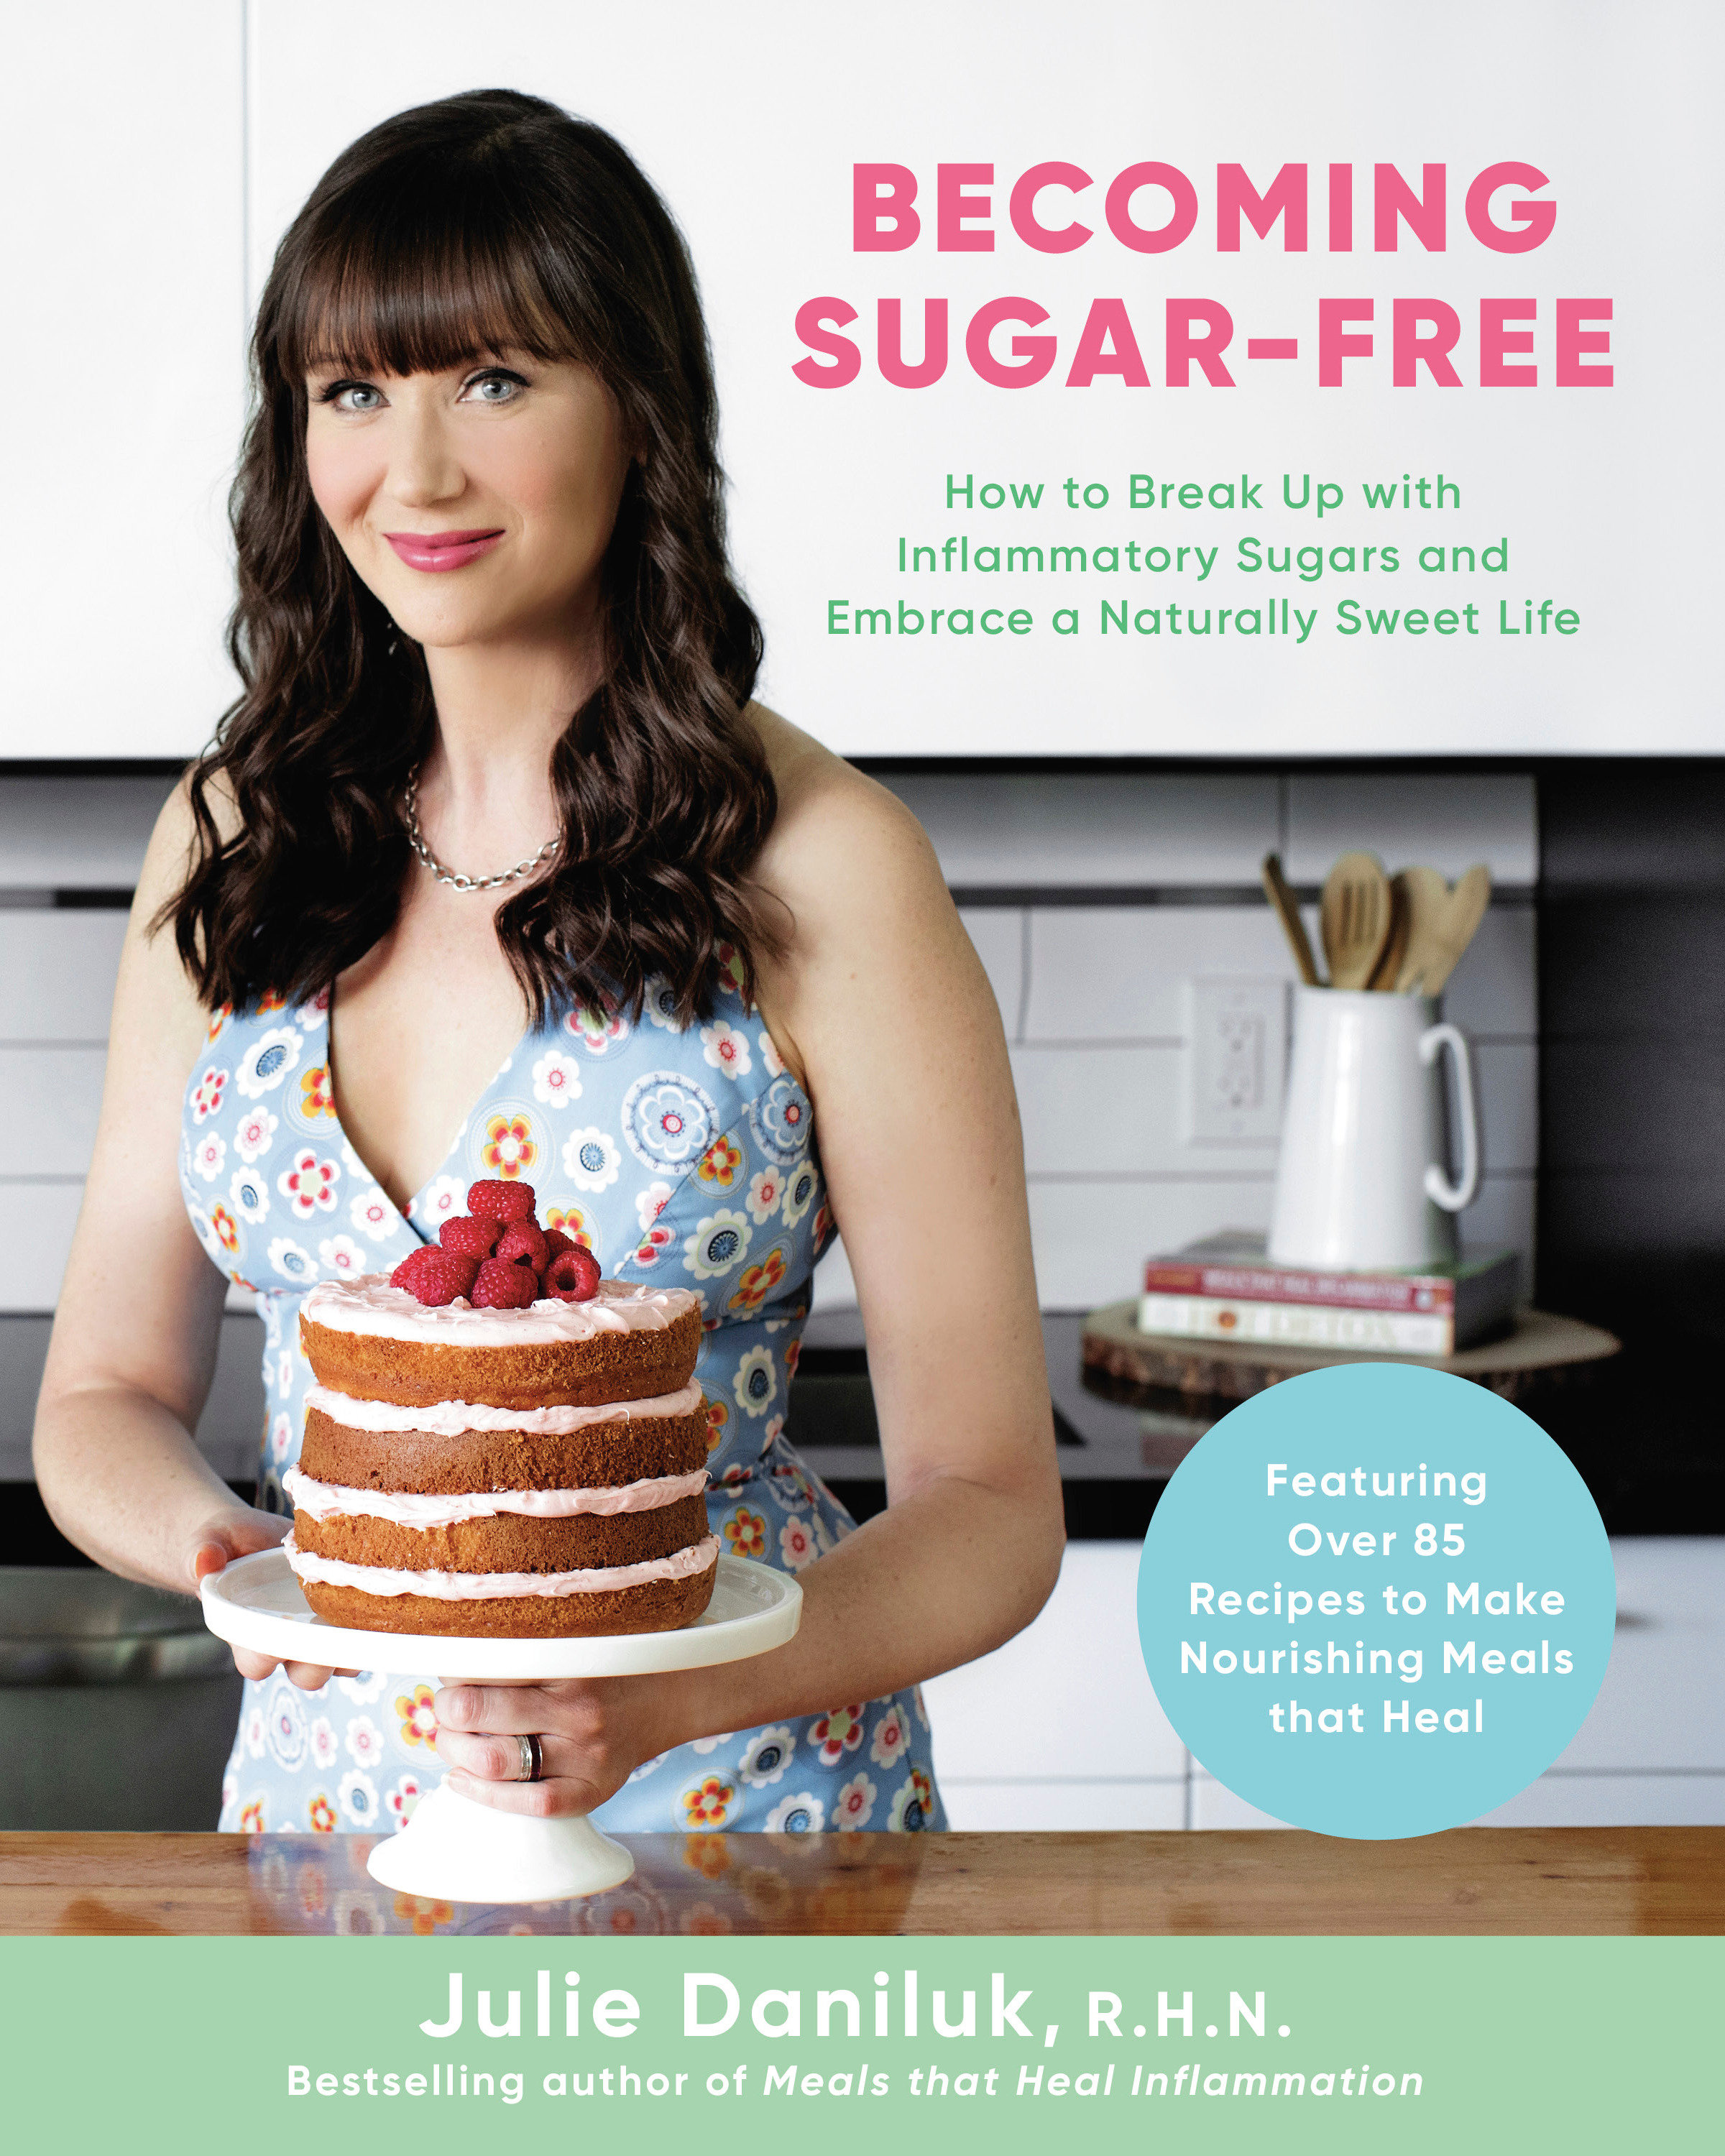 Cover Image of Becoming Sugar-Free